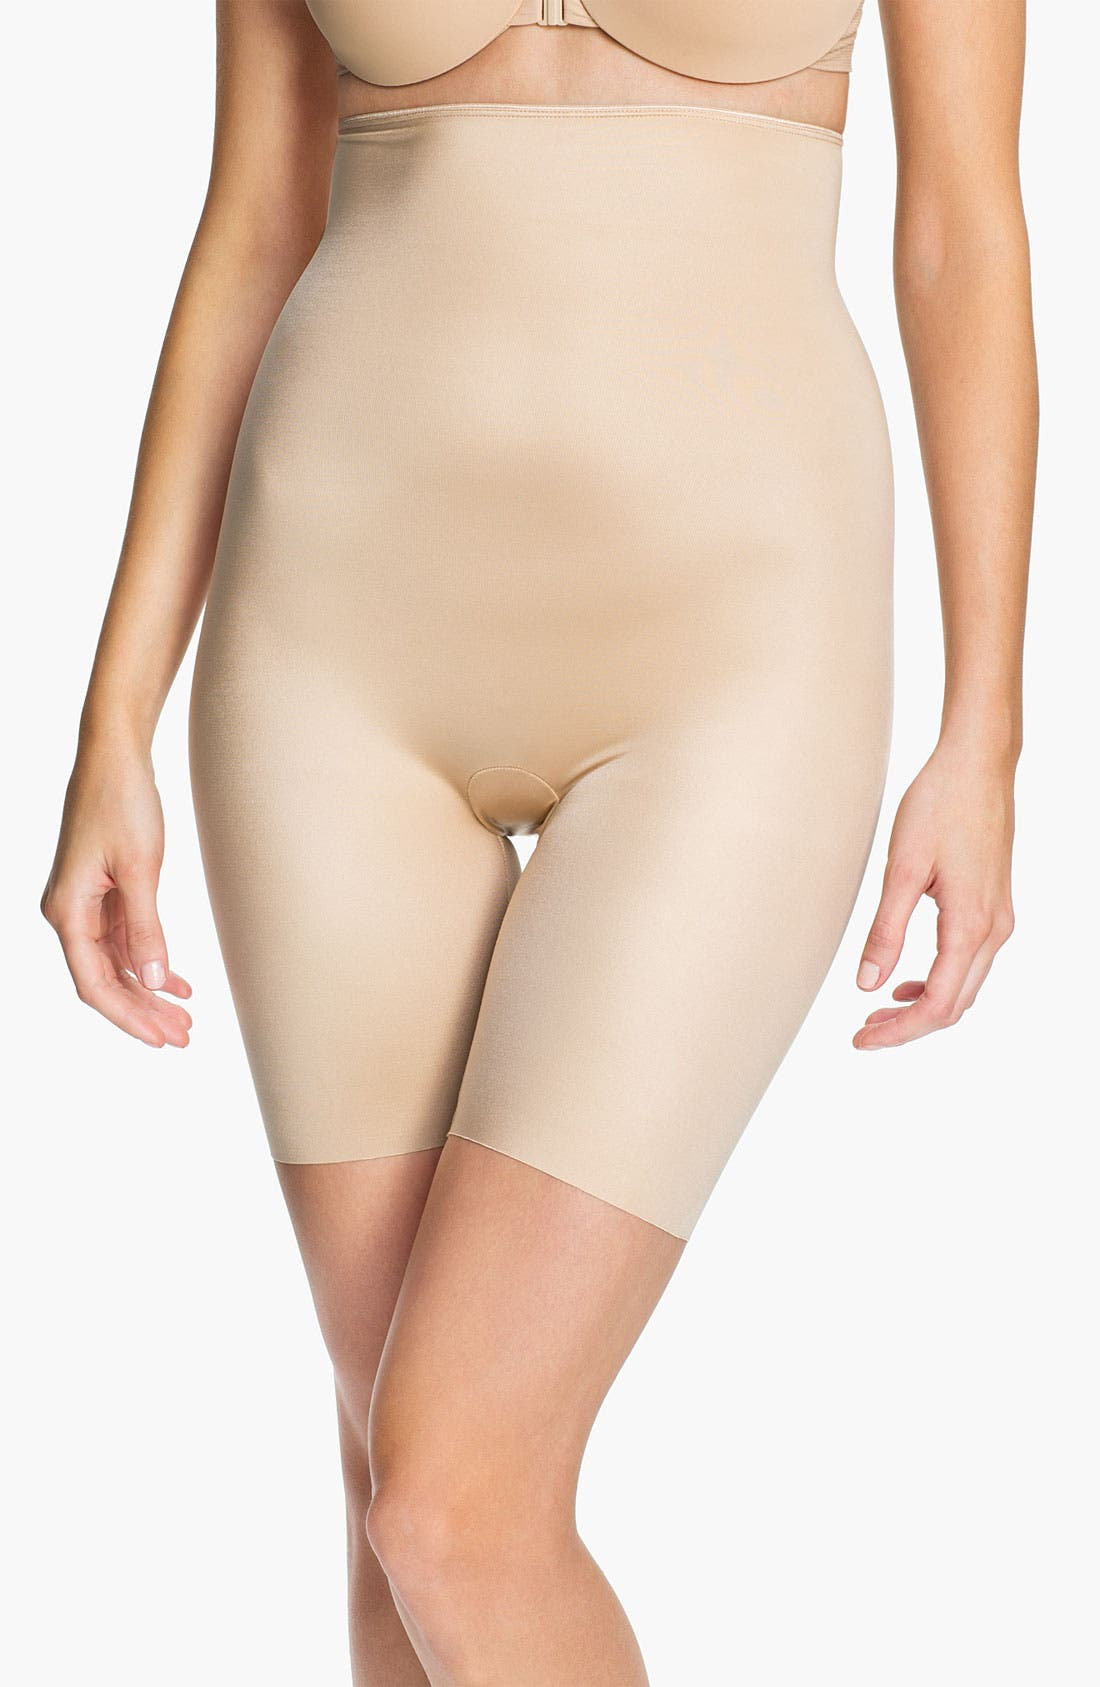 Alternate Image 1 Selected - SPANX® 'Slimplicity' High Waist Shaper